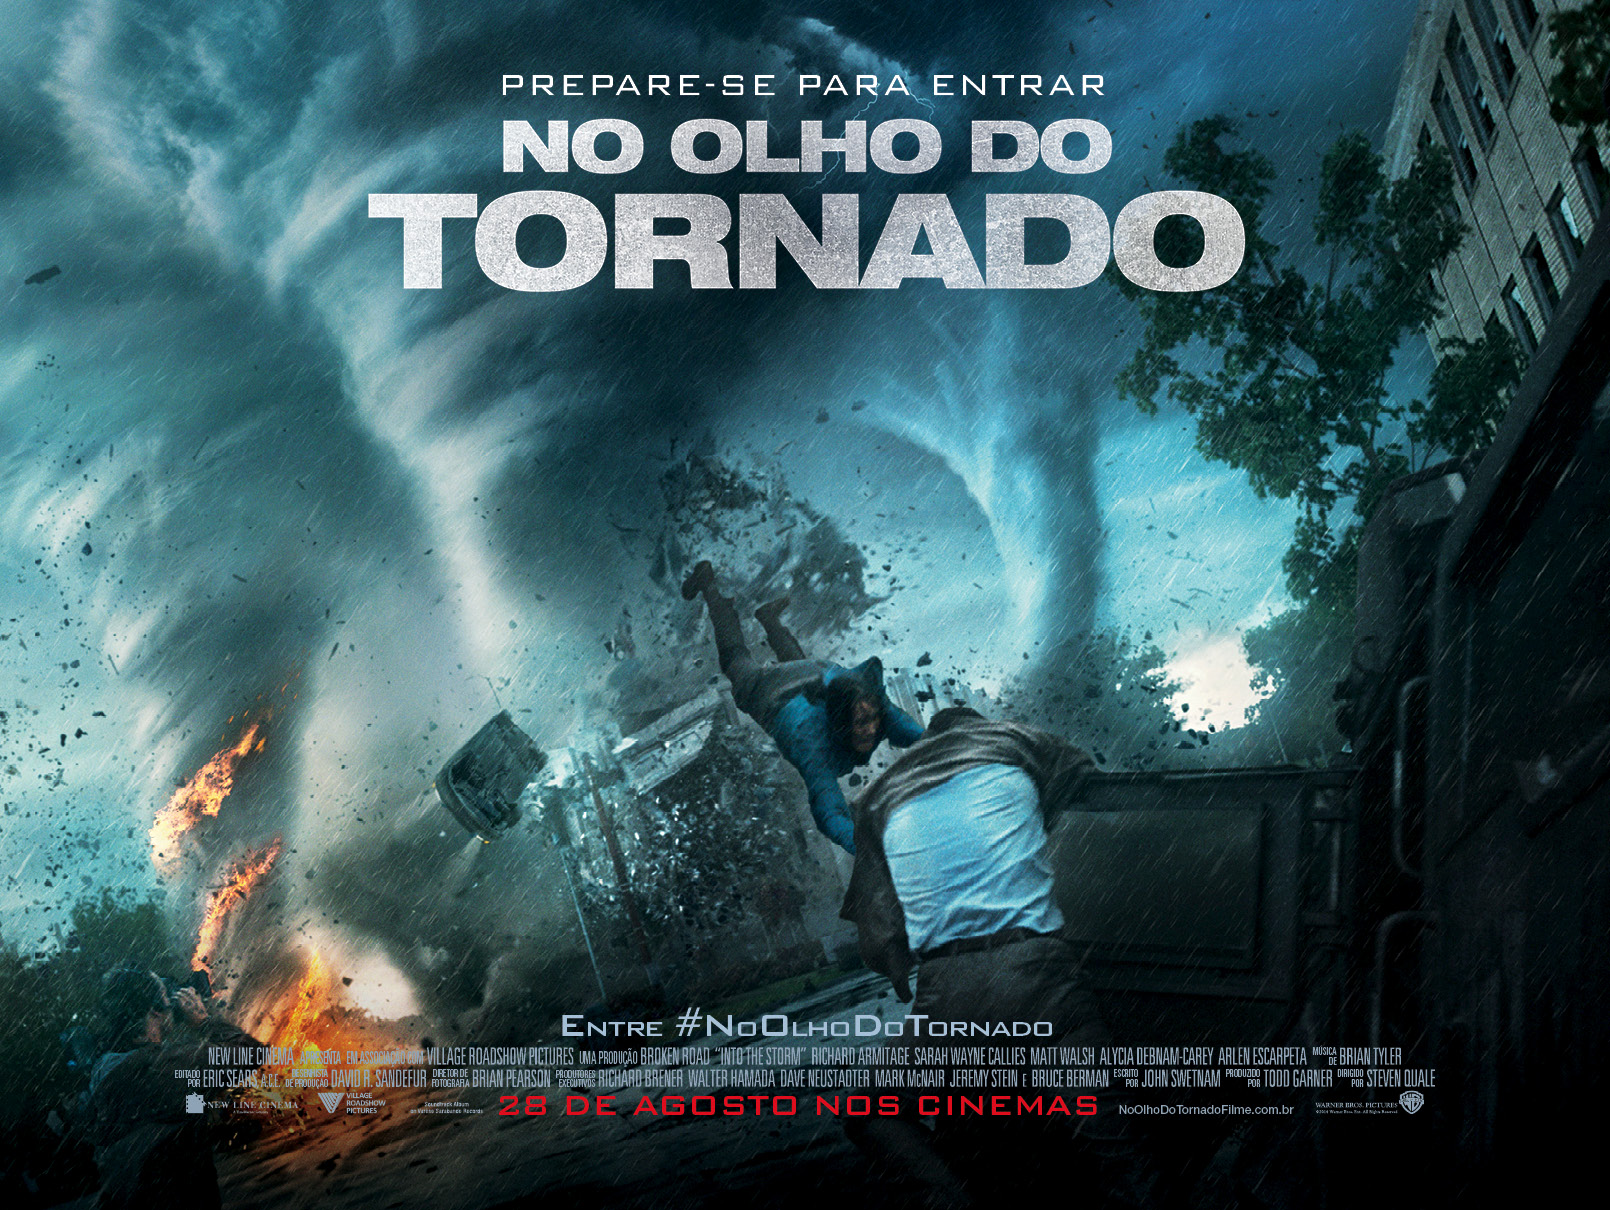 306707id1b_IntoTheStorm_Main_Intl_UK_40x30_Quad_200